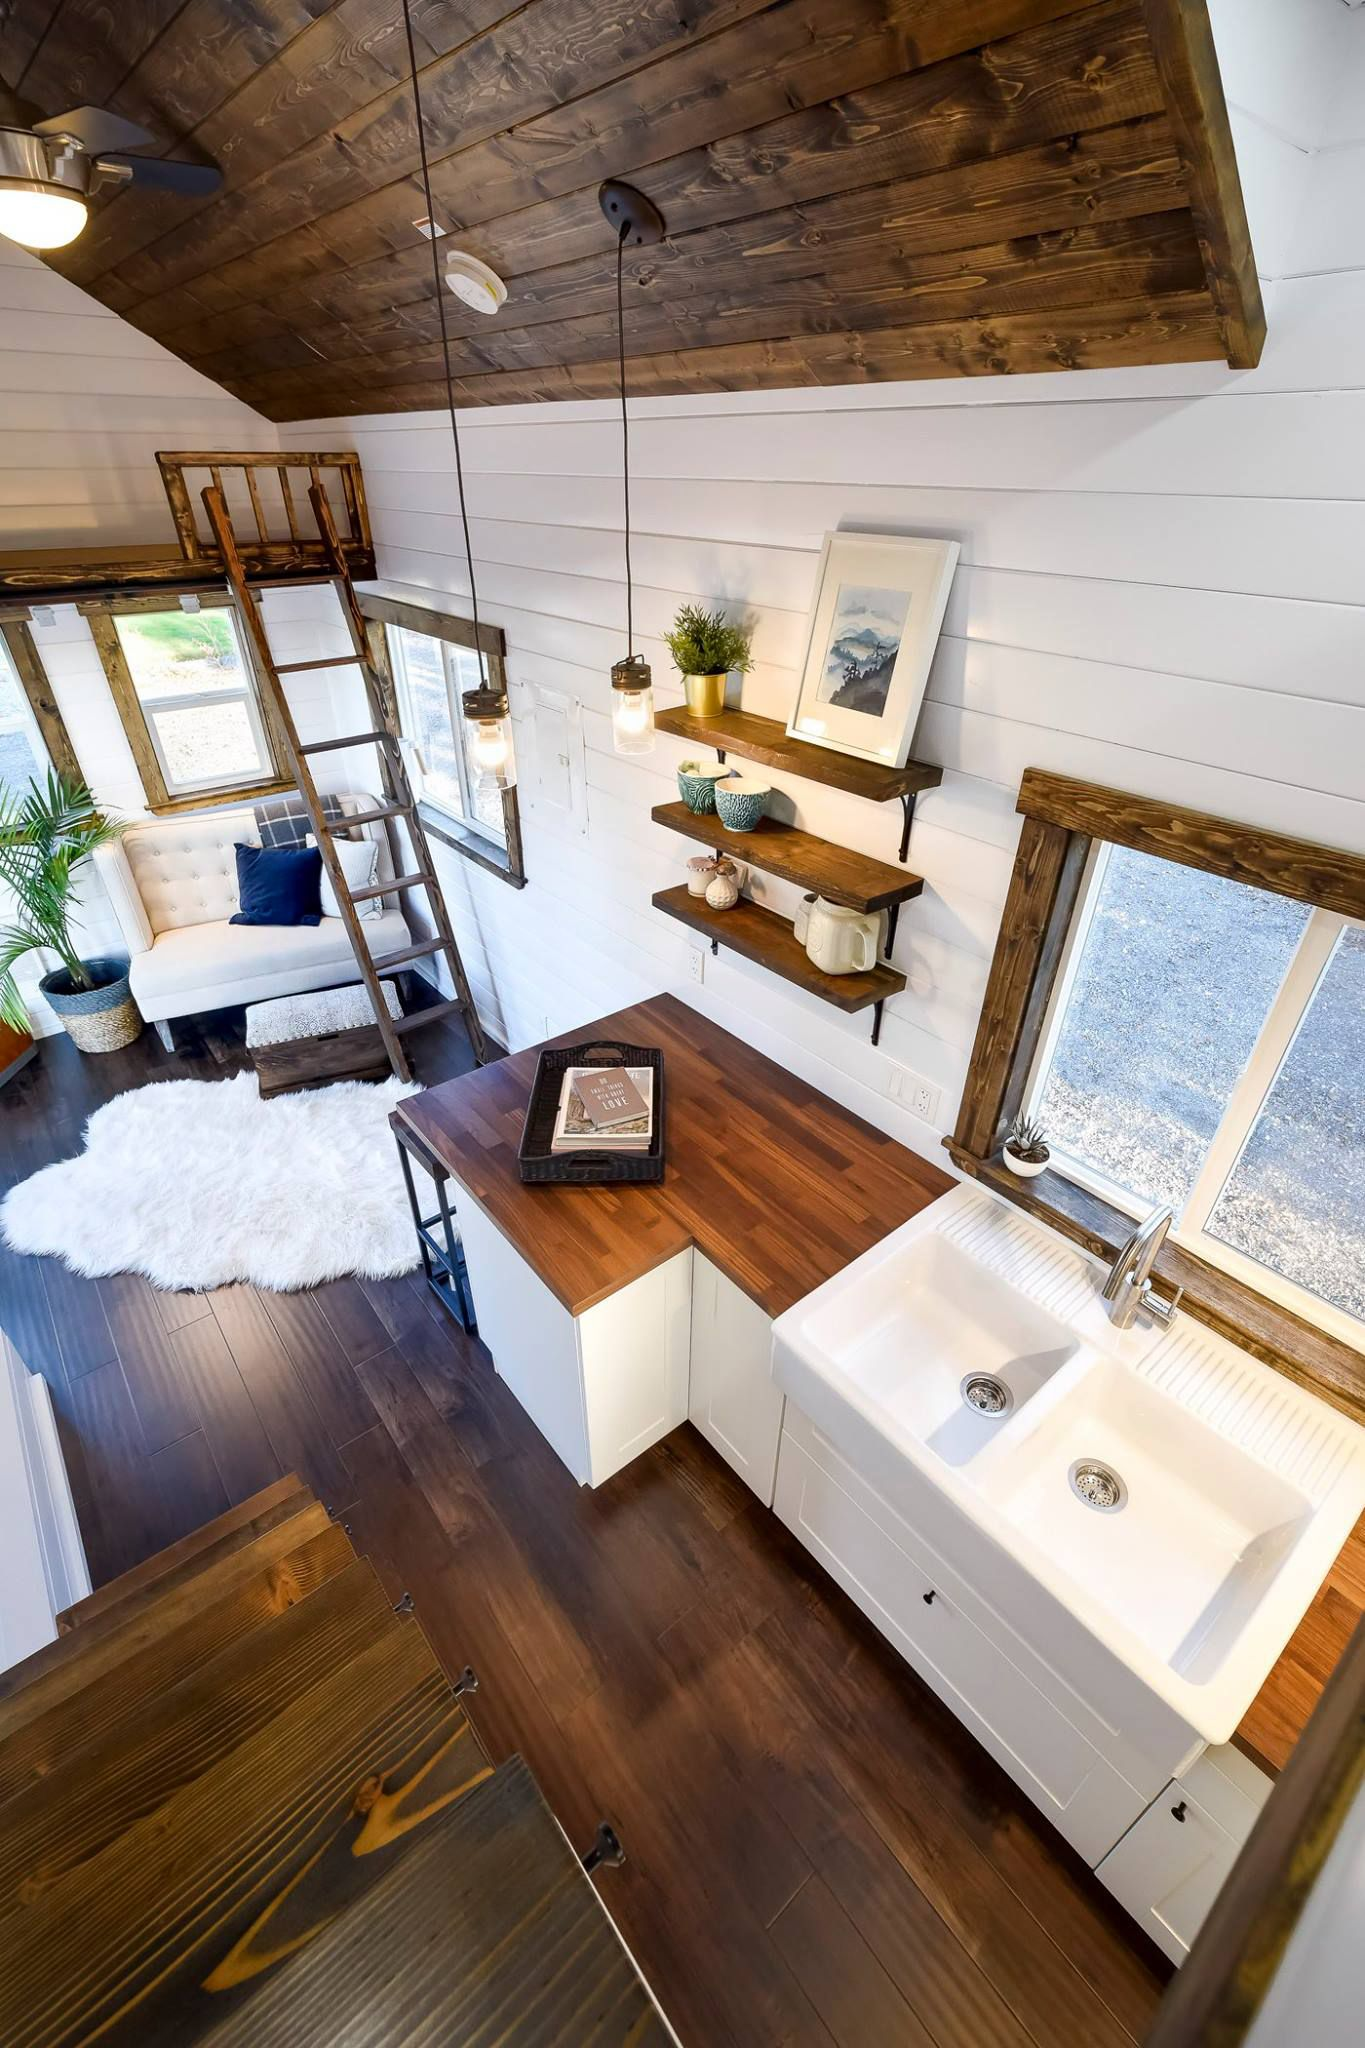 26 Napa Edition By Mint Tiny Homes Tiny House Listings Tiny